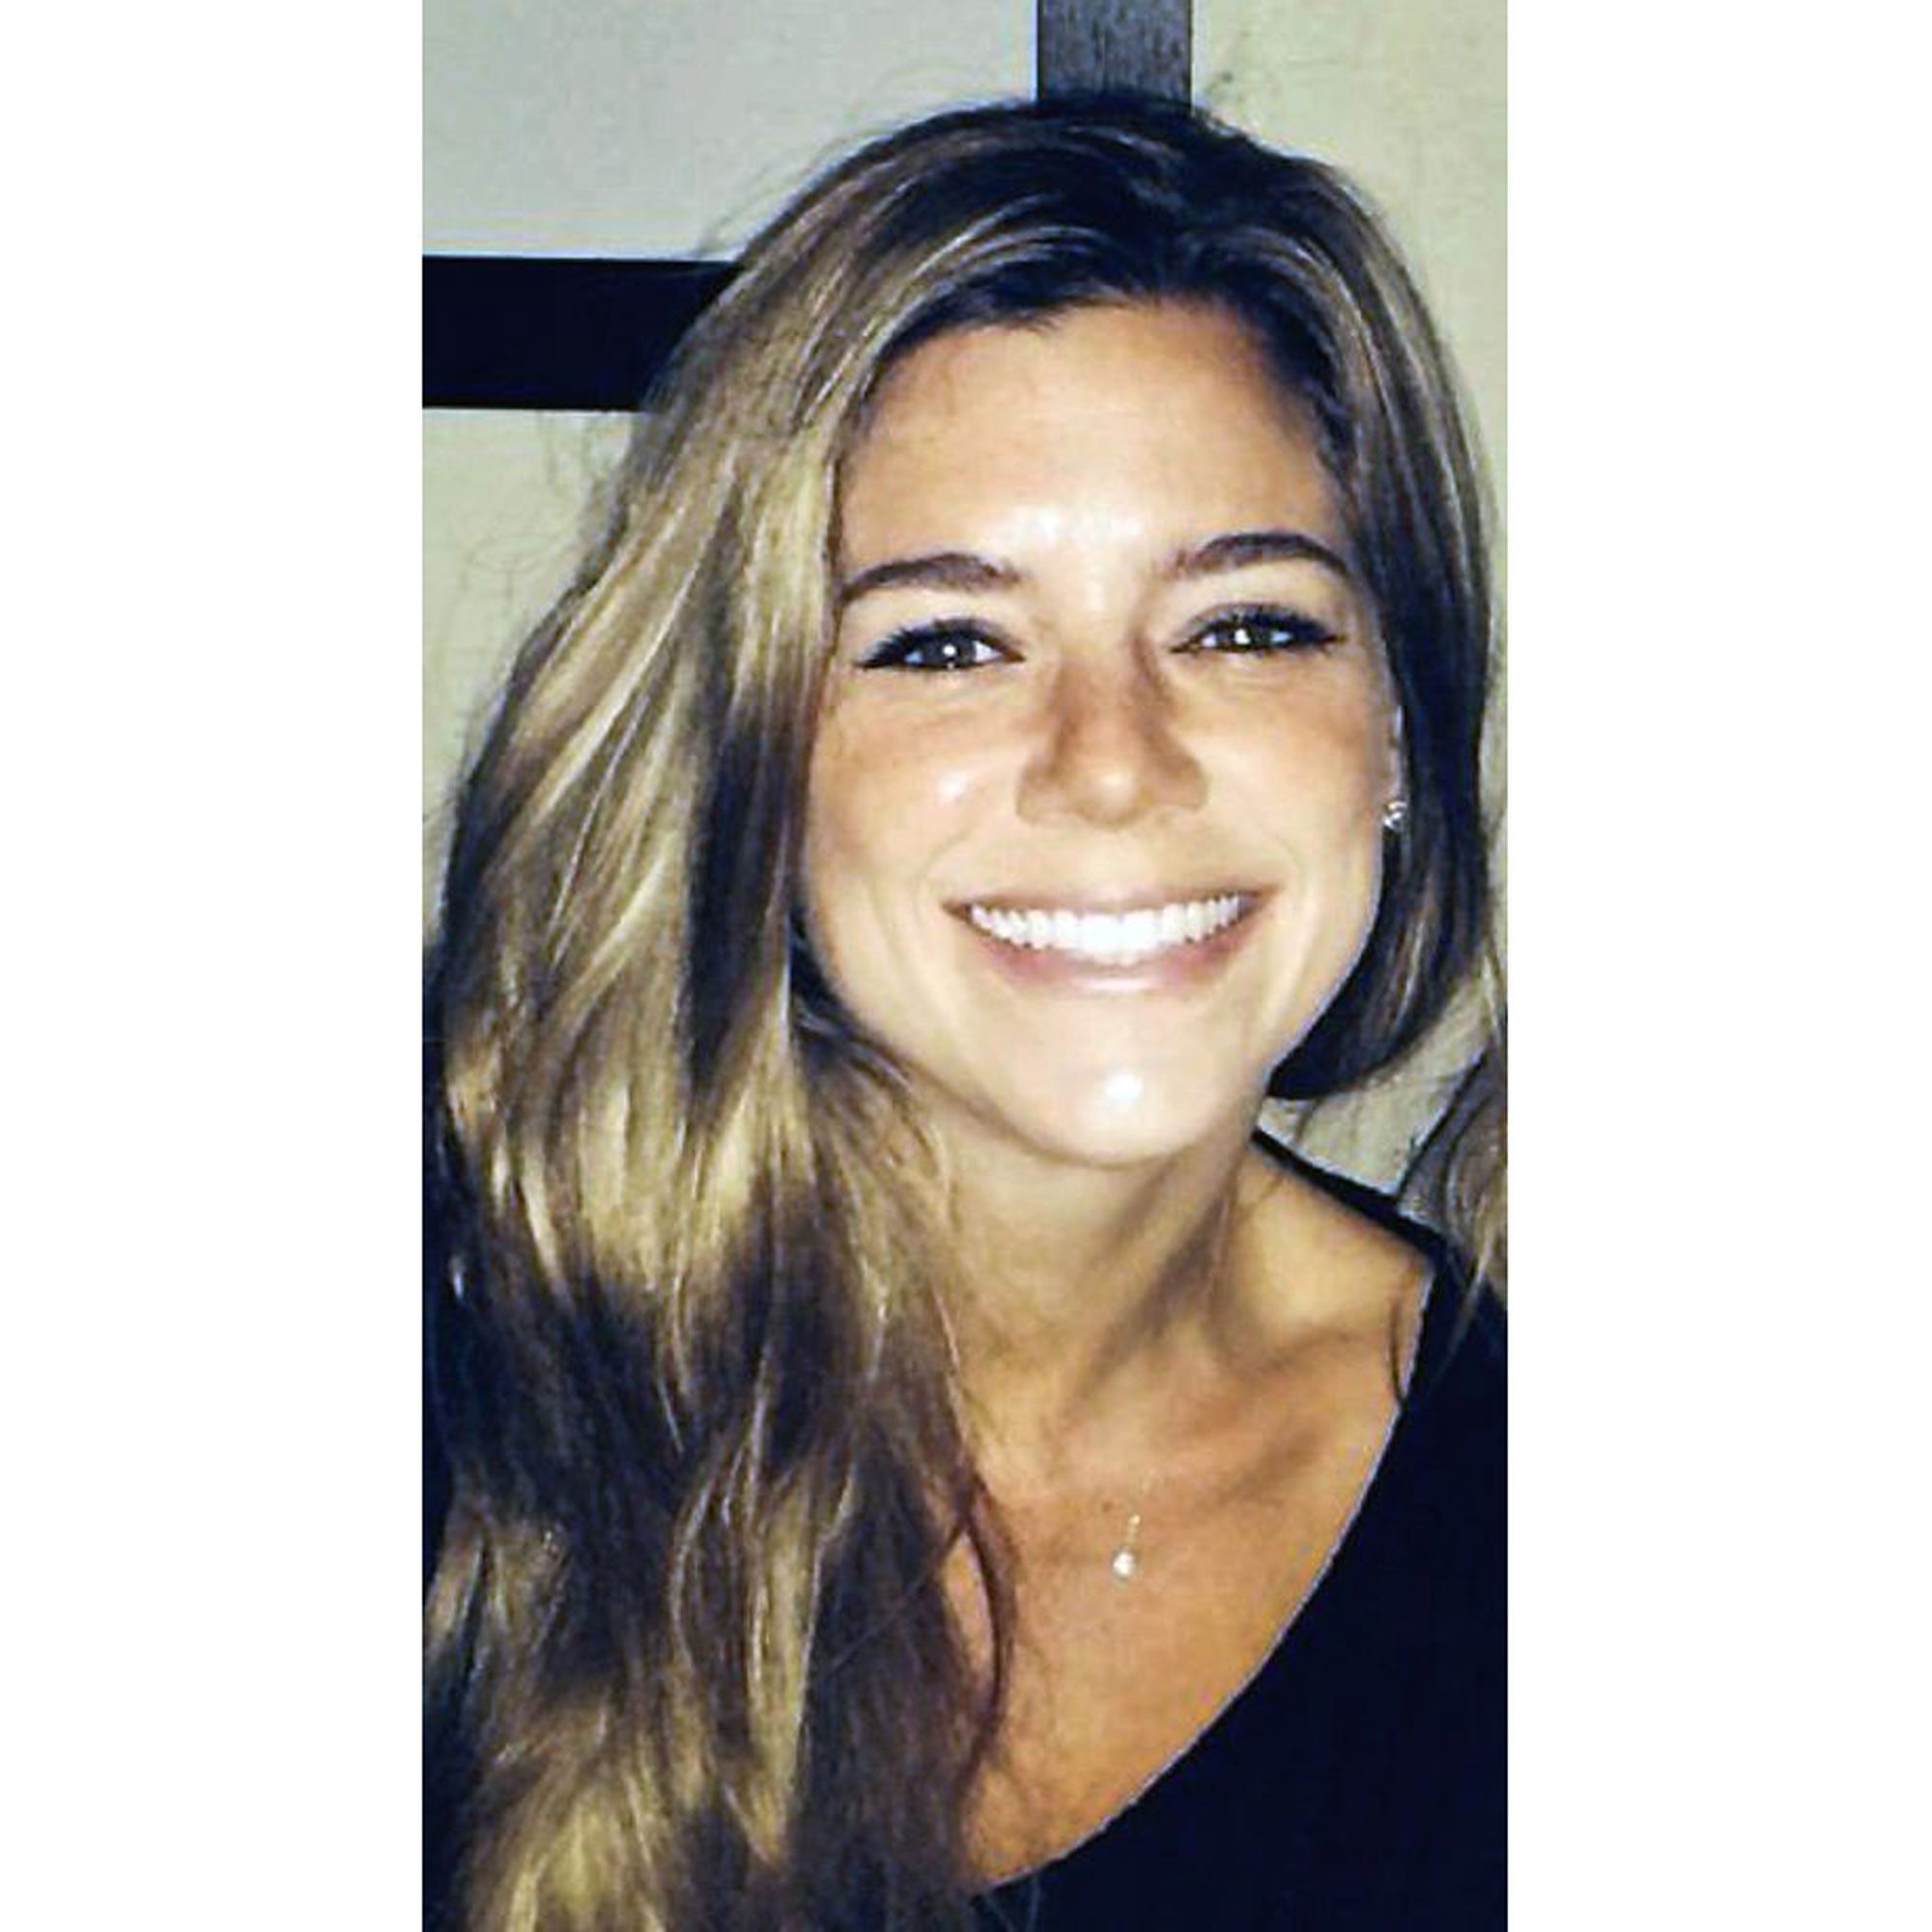 Mexican Man Found Not Guilty of Homicide in Kate Steinle Trial